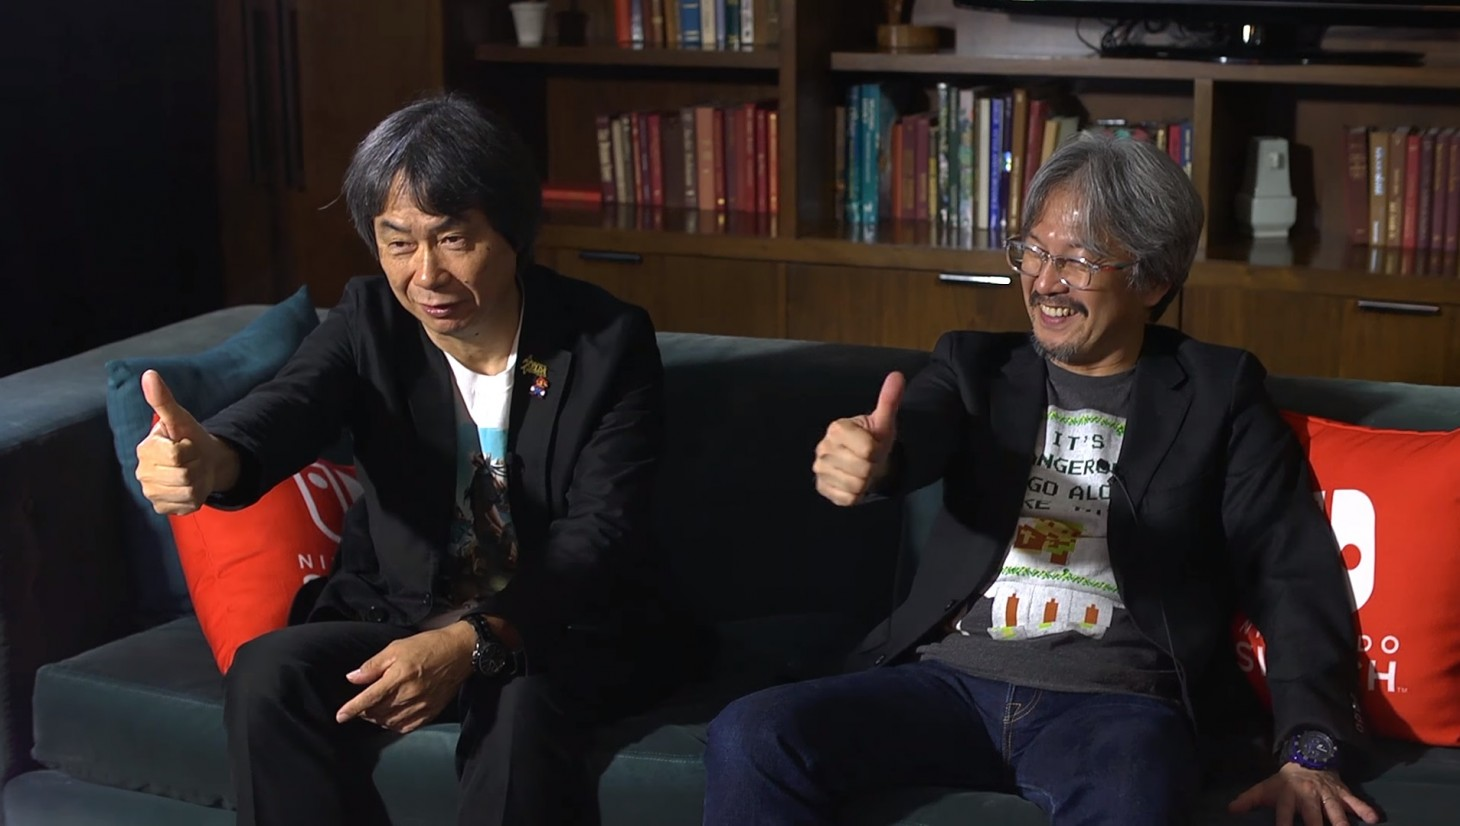 Aonuma reveals how his Zelda workload has changed over the years, and shares his excitement in working alongside Miyamoto